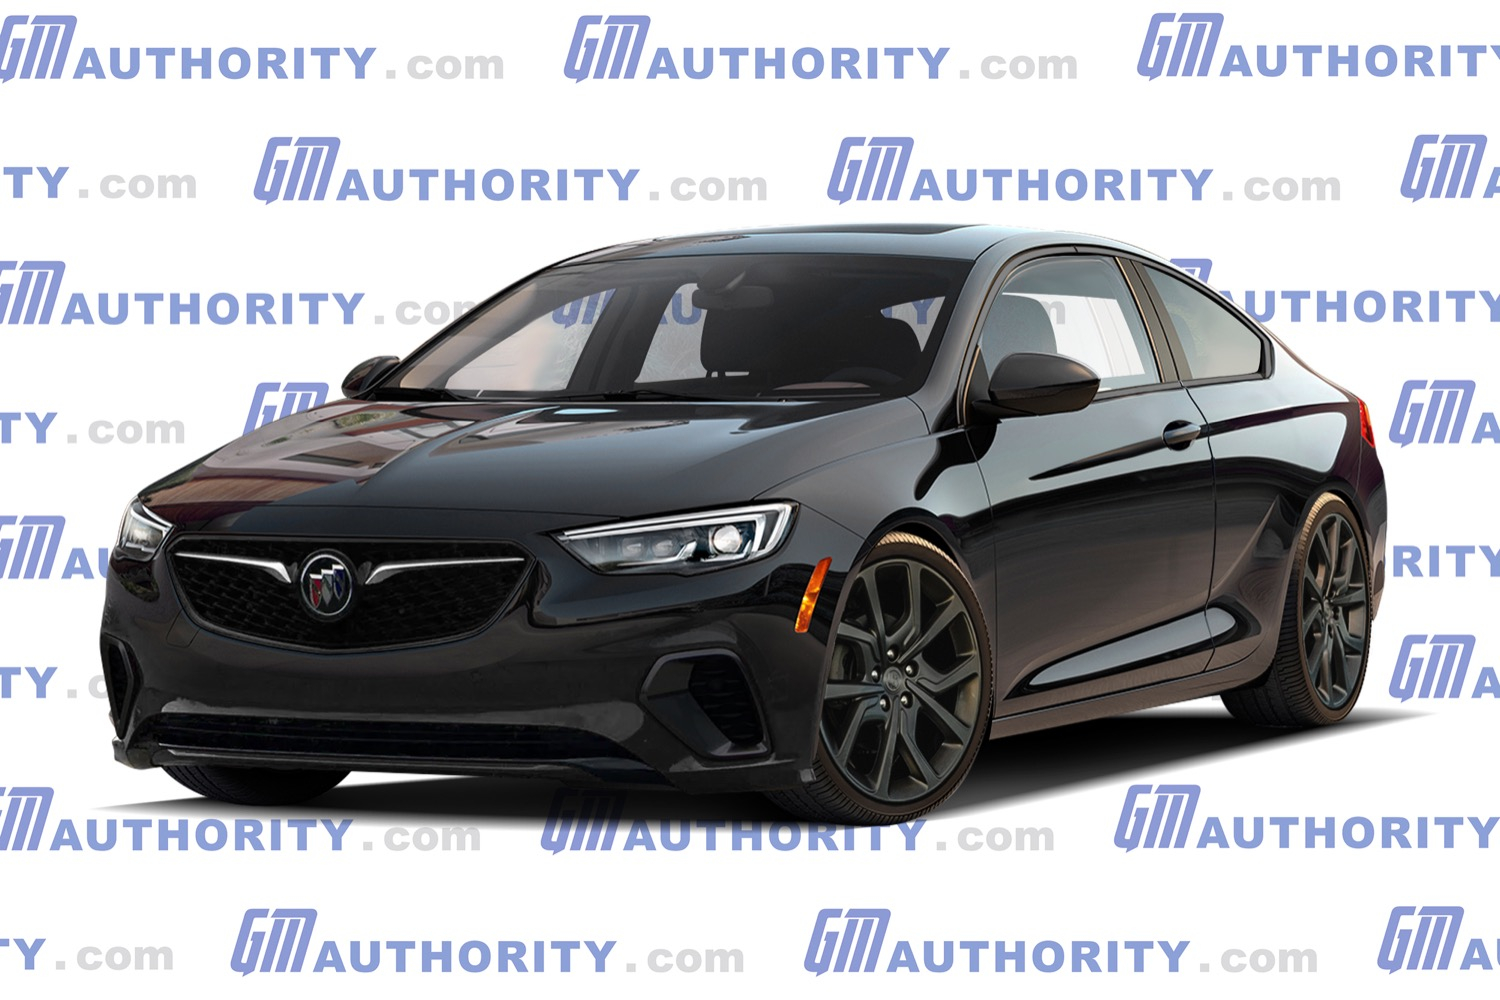 Modern Buick Regal Gnx Rendered | Gm Authority New 2022 Buick Regal Reviews, Images, Price